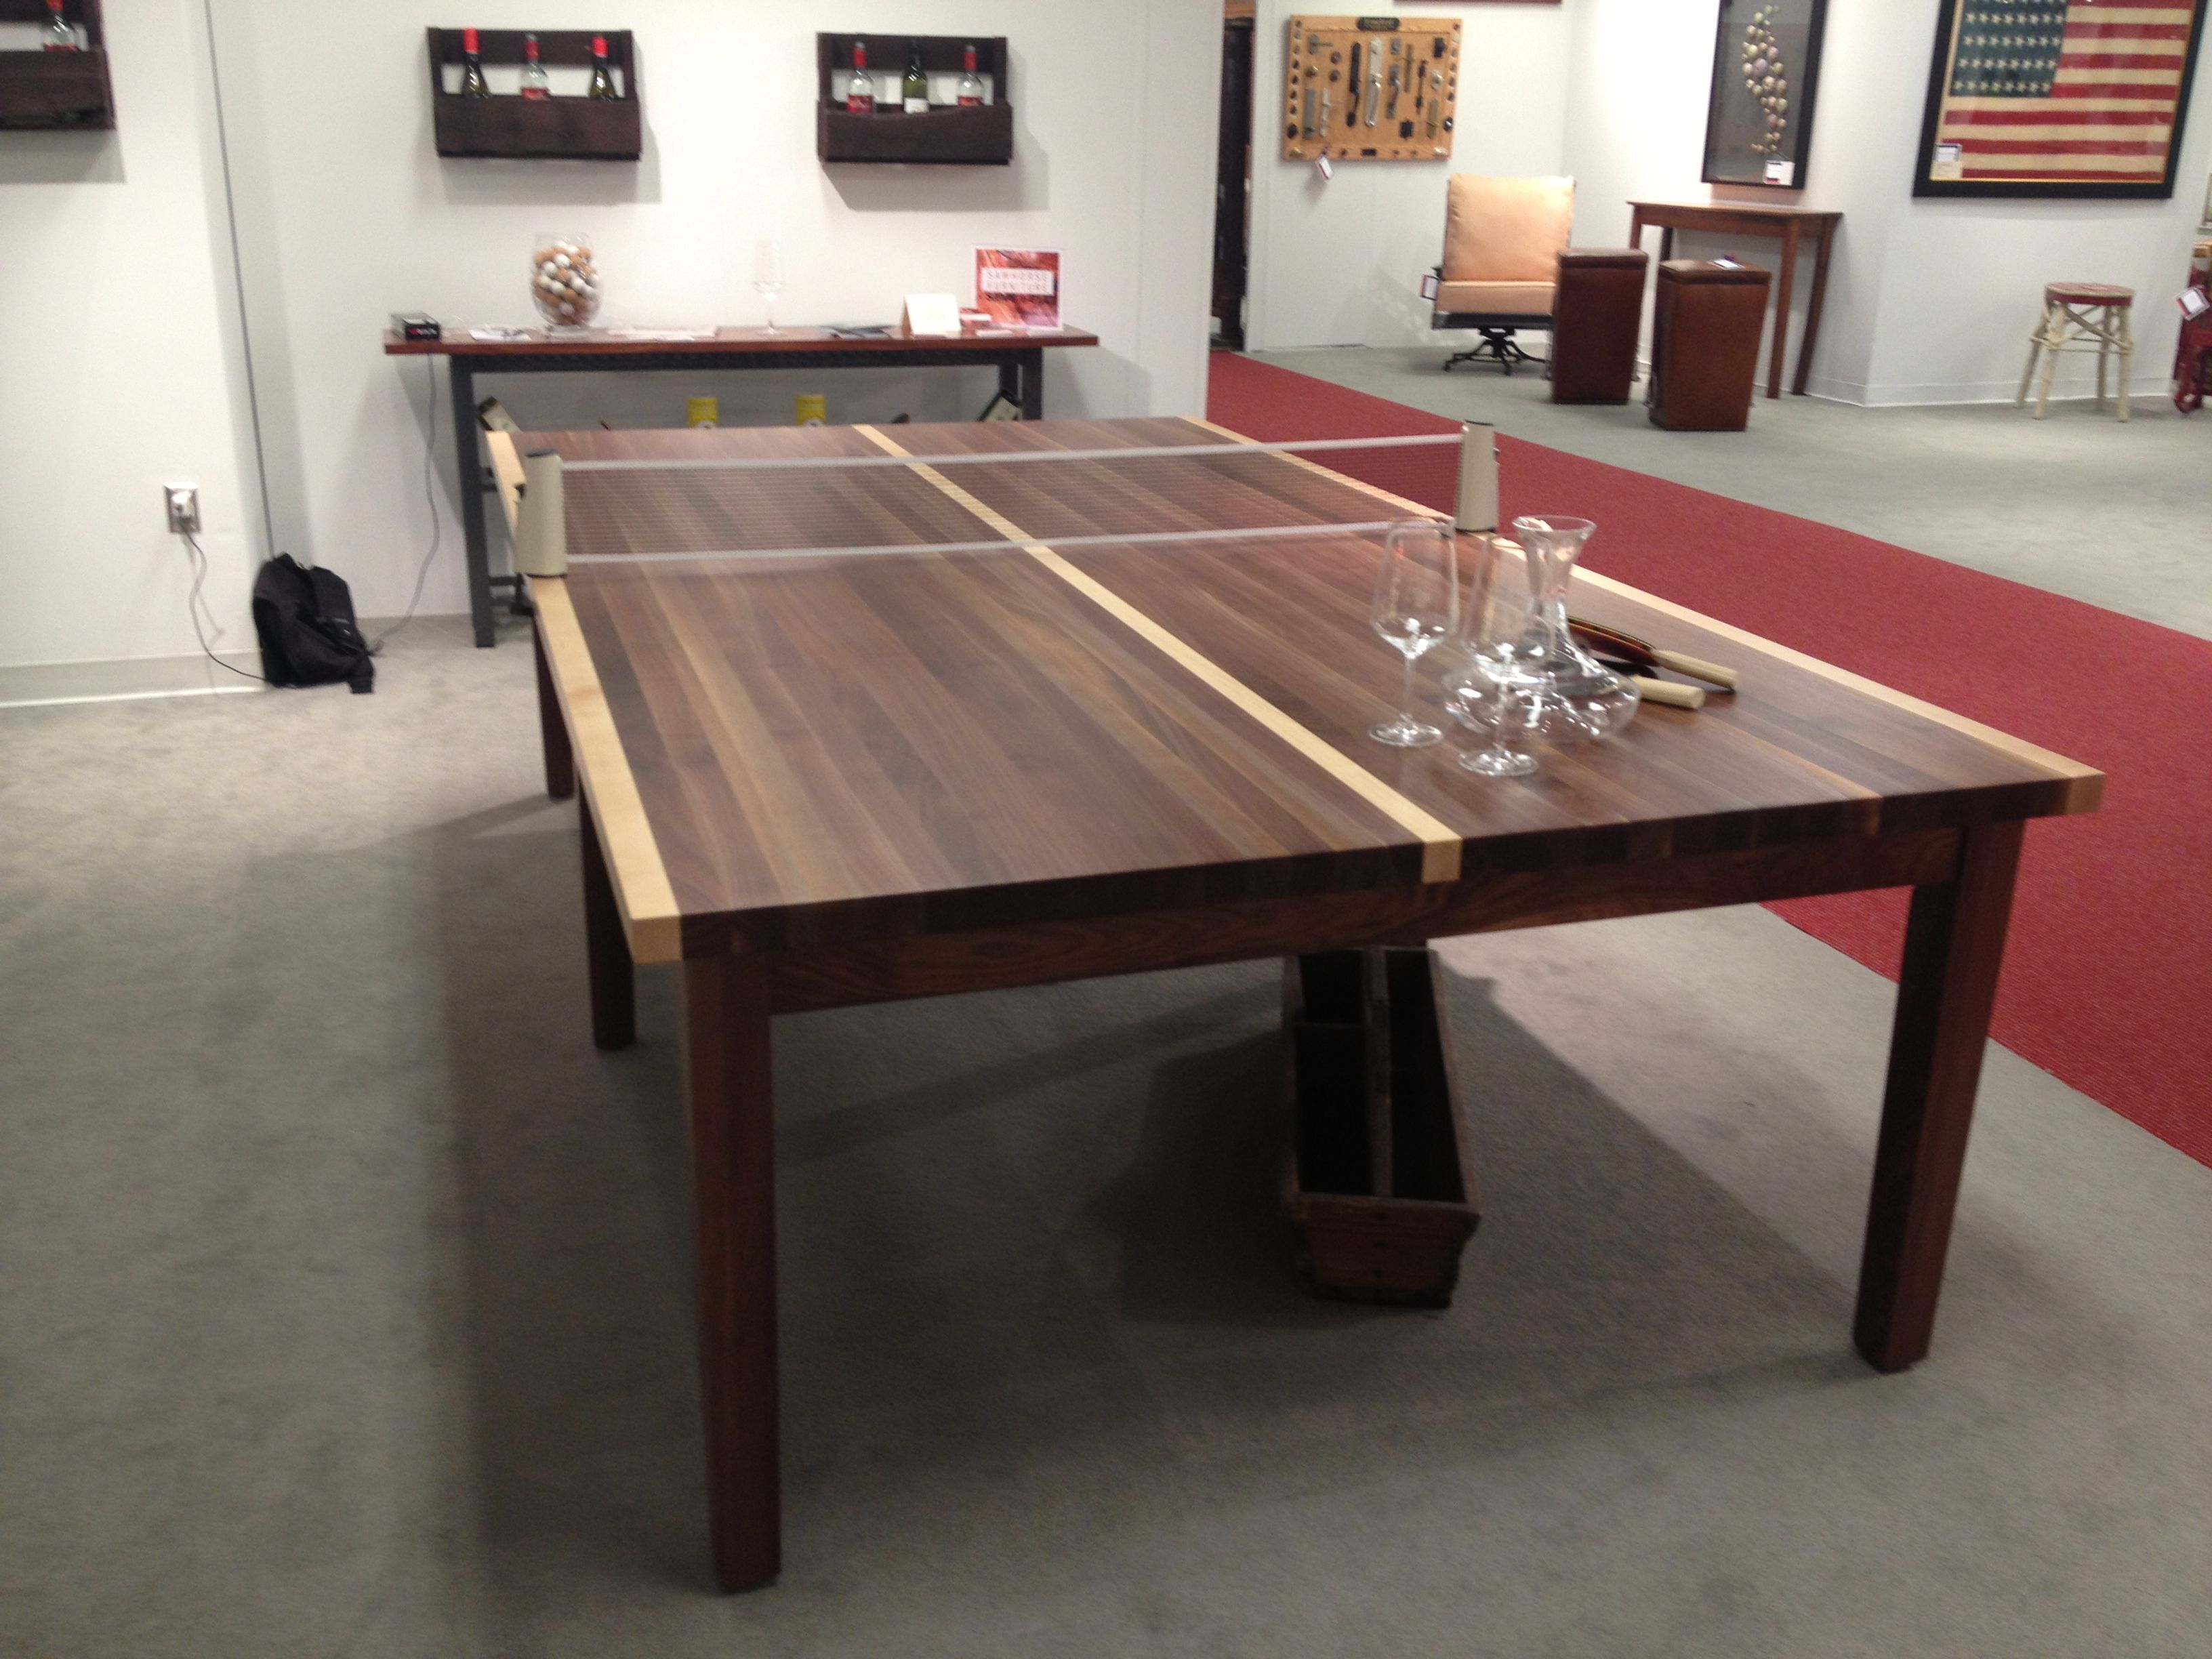 Build your own pool table plans - Custom Wood Top Ping Pong Table